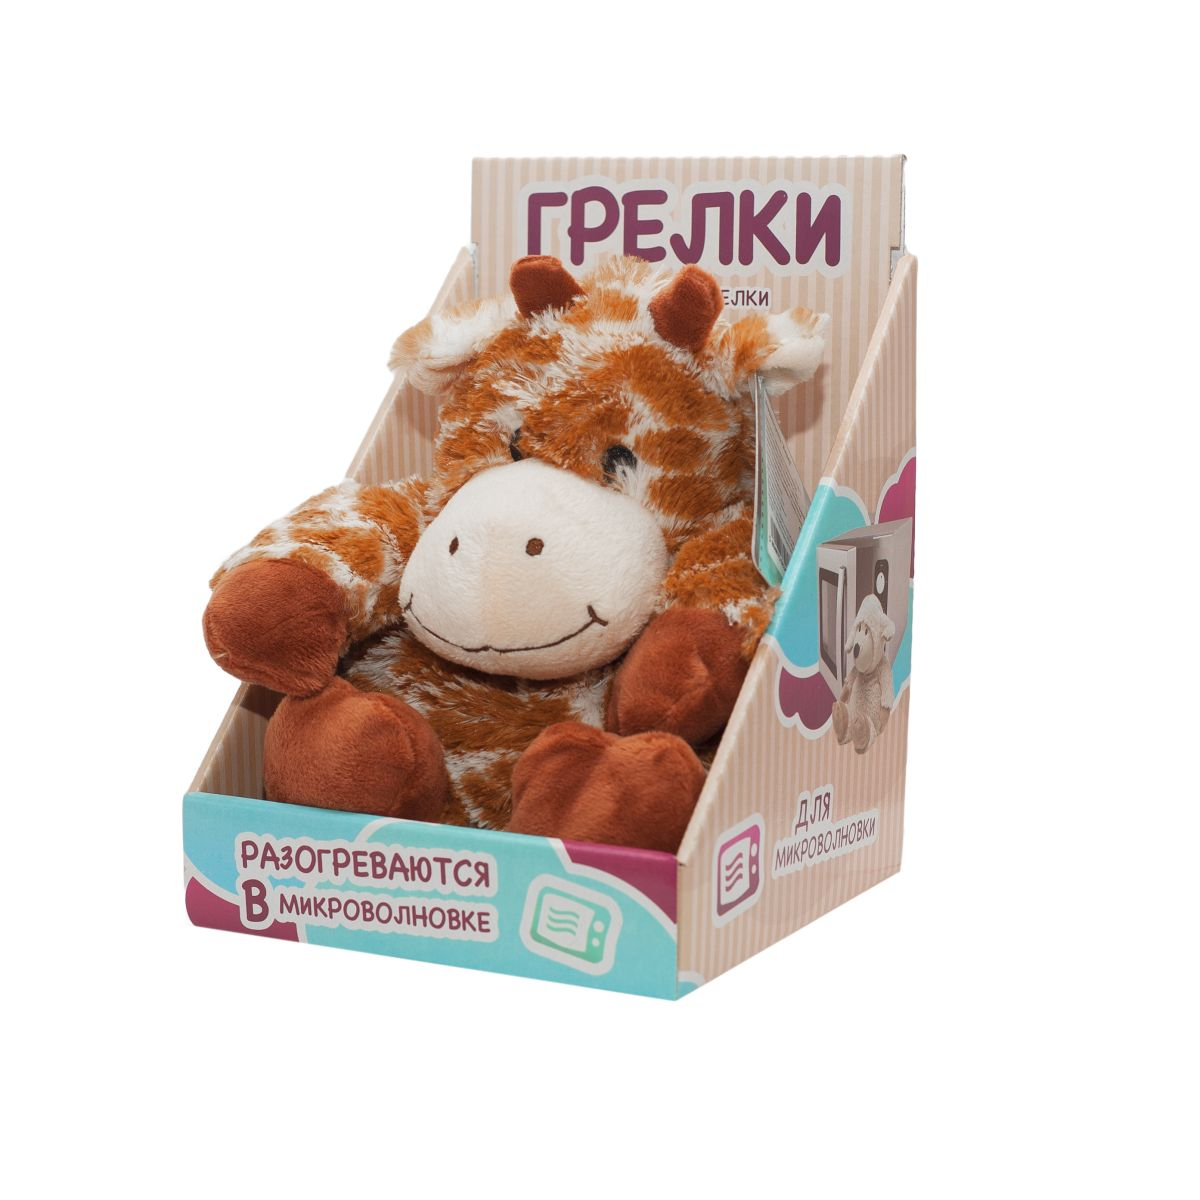 Пинкл (Pinkl) | Игрушка-грелка Жираф | Cozy Plush Microwaveable Soft Toy Giraffe Intelex